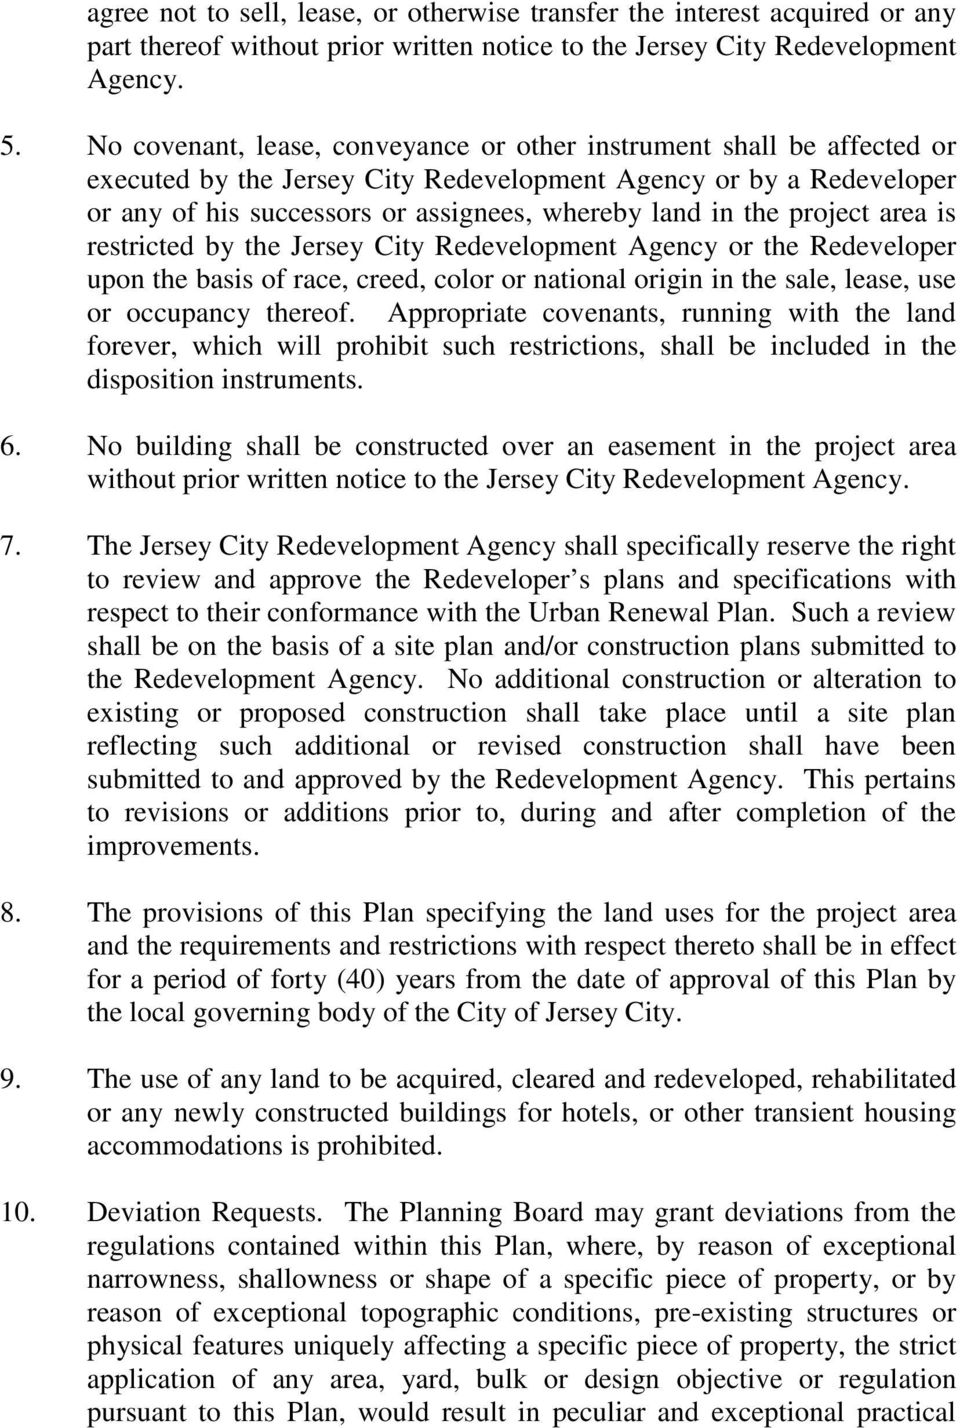 project area is restricted by the Jersey City Redevelopment Agency or the Redeveloper upon the basis of race, creed, color or national origin in the sale, lease, use or occupancy thereof.